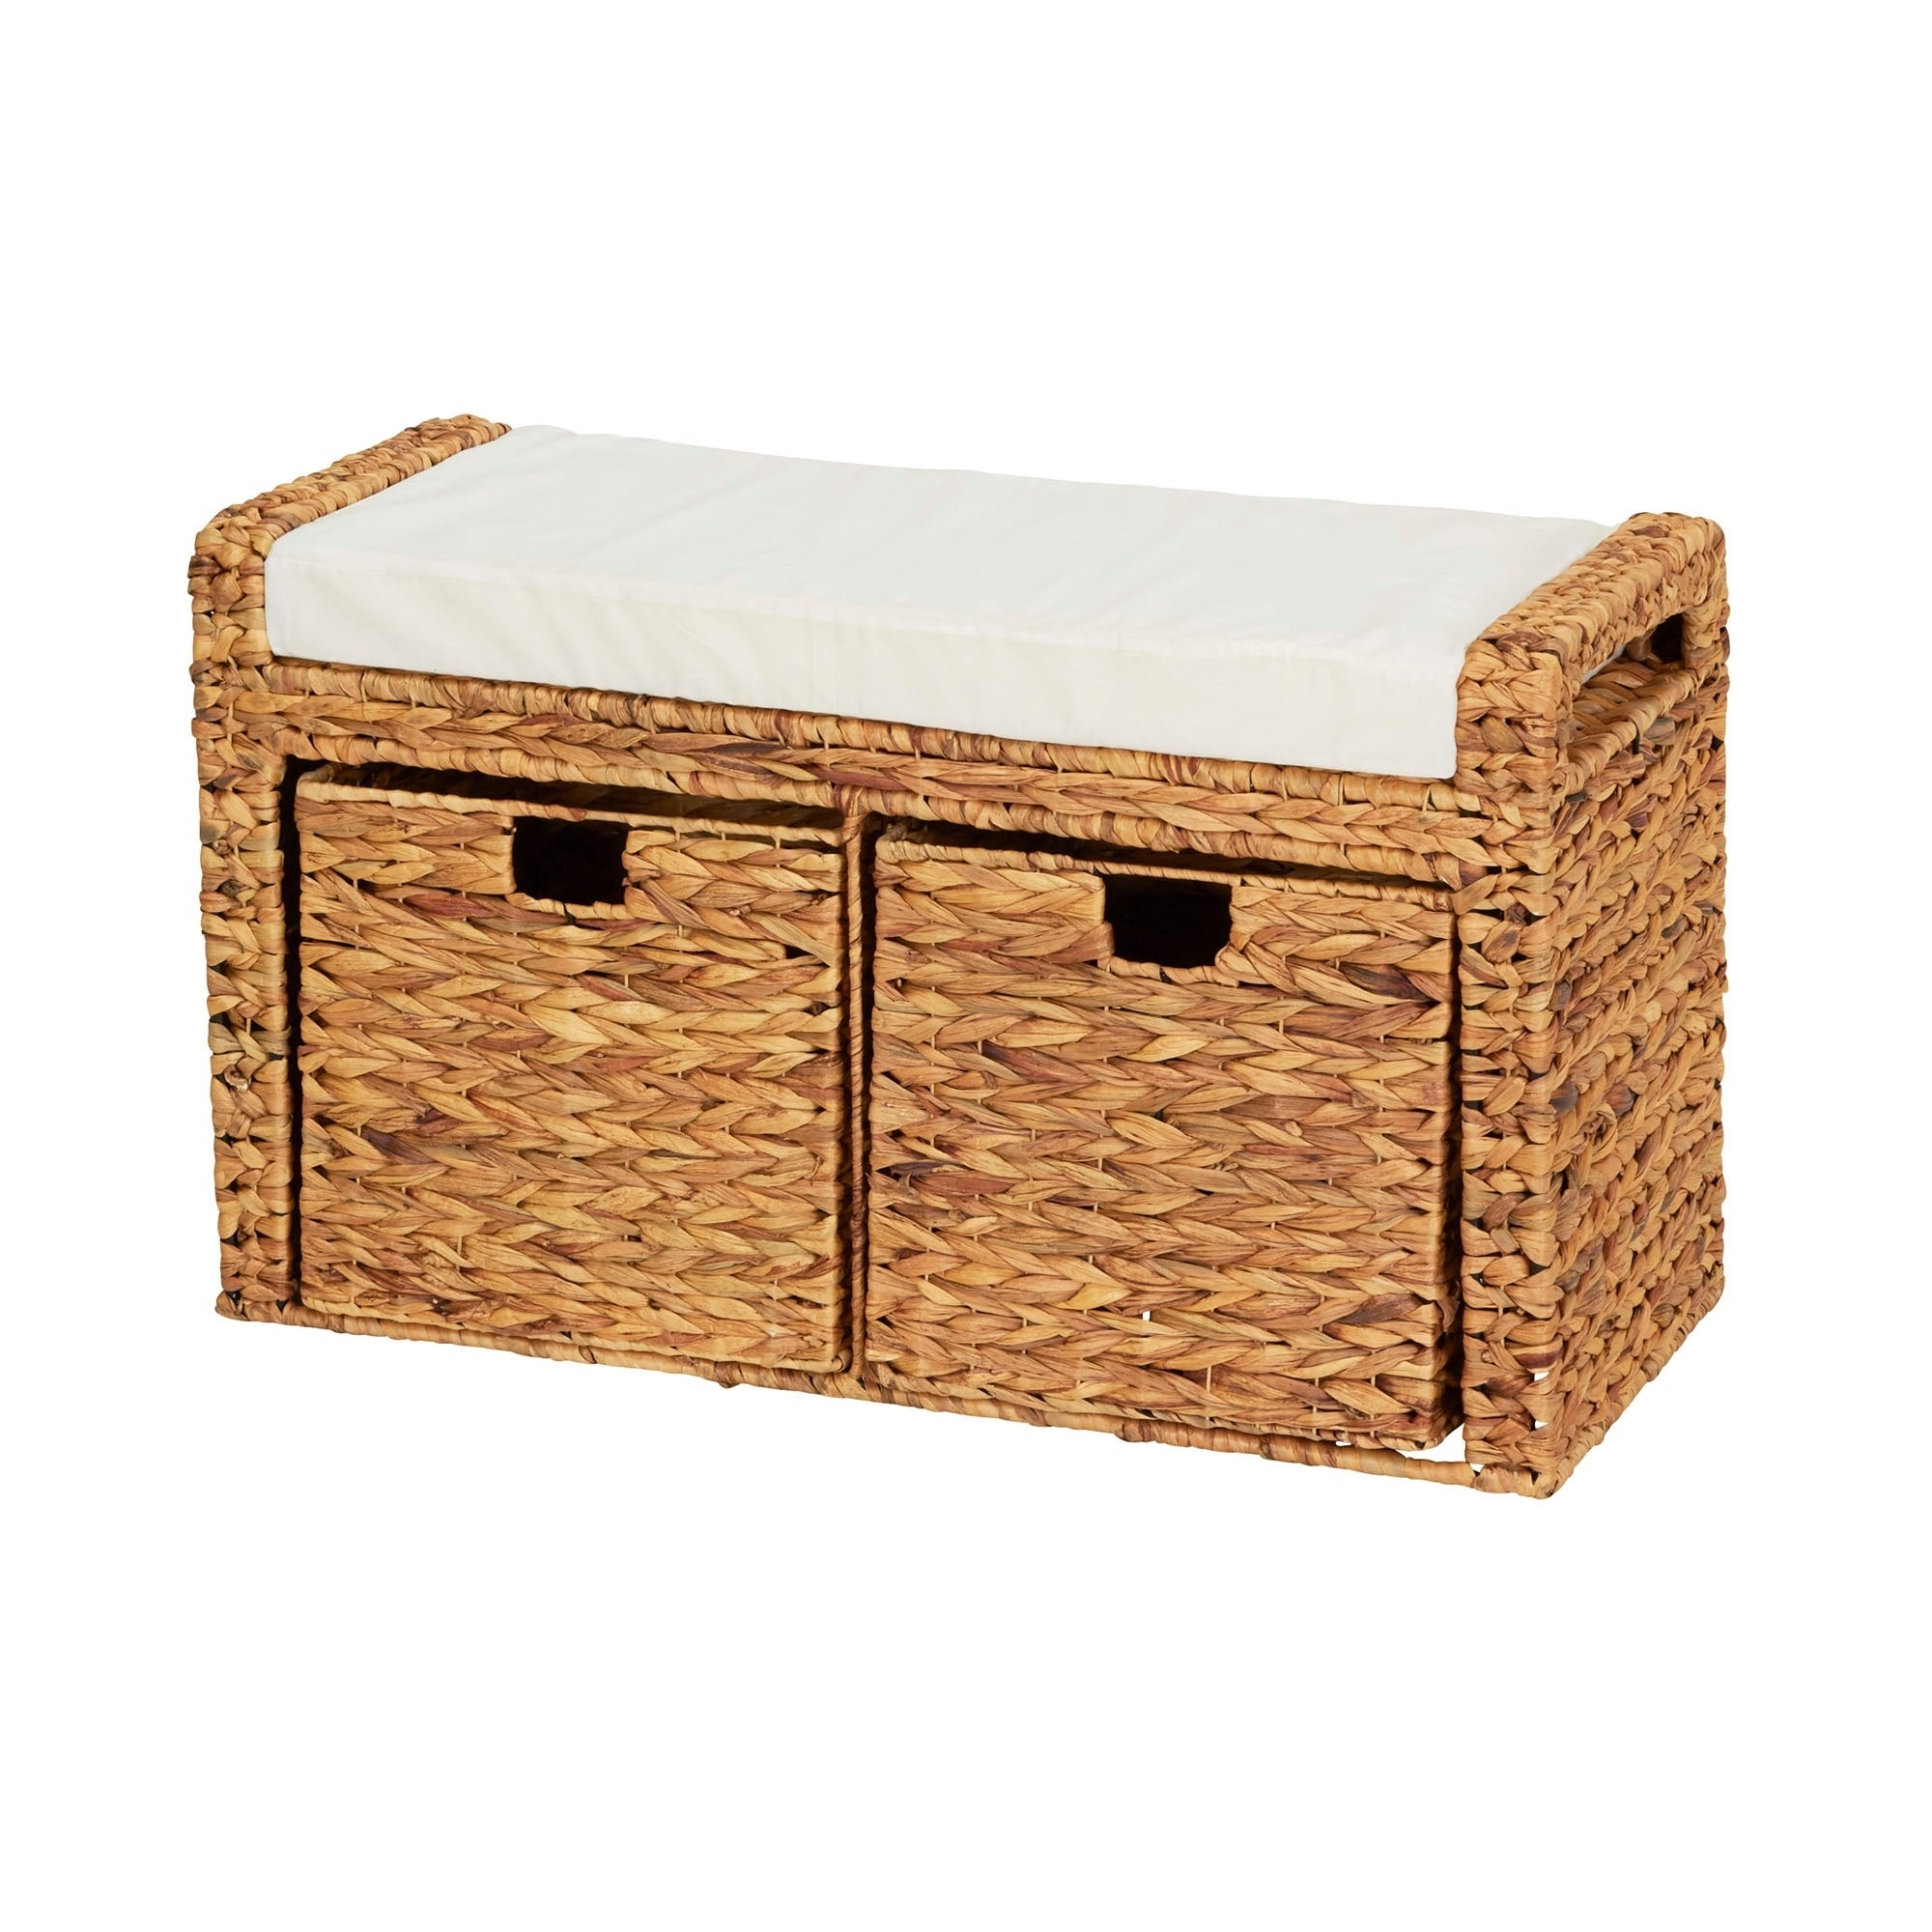 Miraculous Household Essentials Beige Wicker Cushioned Entryway Storage Bench With Storage Bins Beatyapartments Chair Design Images Beatyapartmentscom